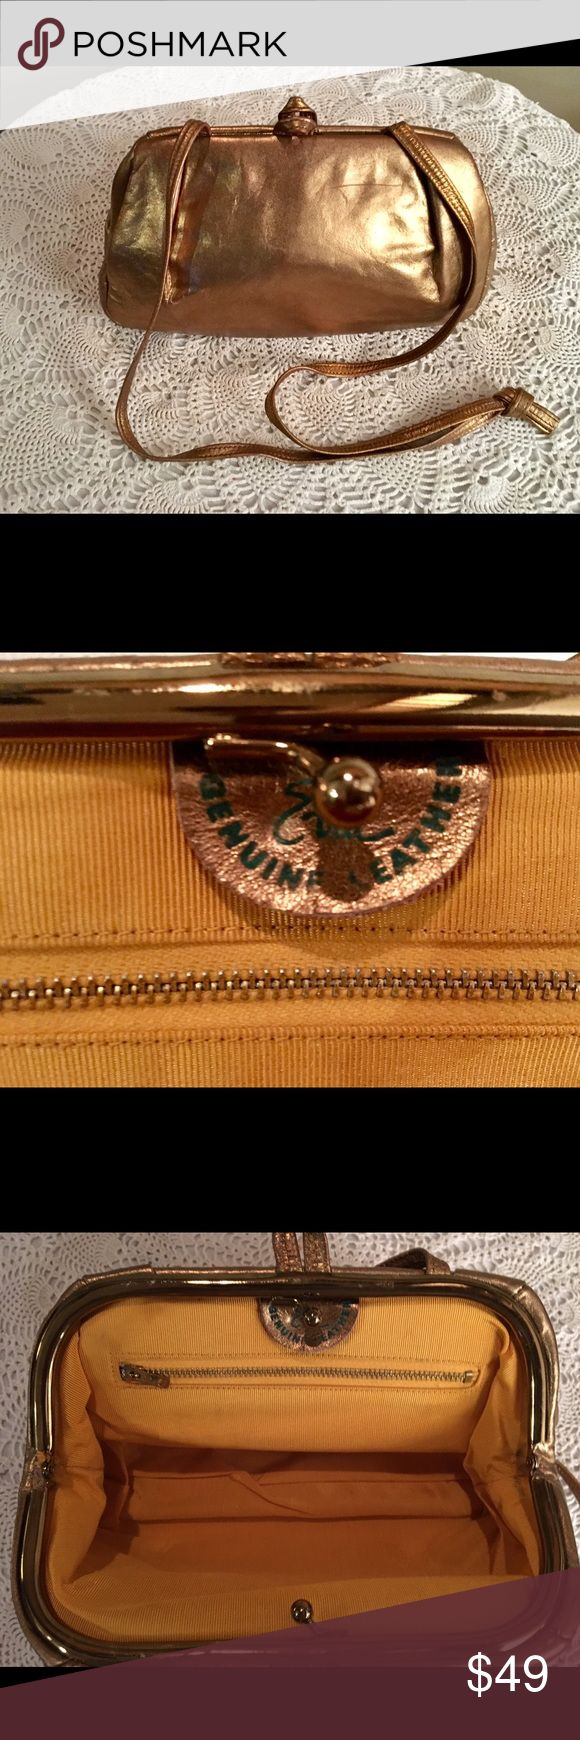 VINTAGE ETRA GOLD GENUINE LEATHER EVENING BAG ABSOLUTELY PERFECT LIKE NEW INSIDE ZIPPER  POCKET IN EXCELLENT CONDITION VINTAGE ETRA Bags Shoulder Bags